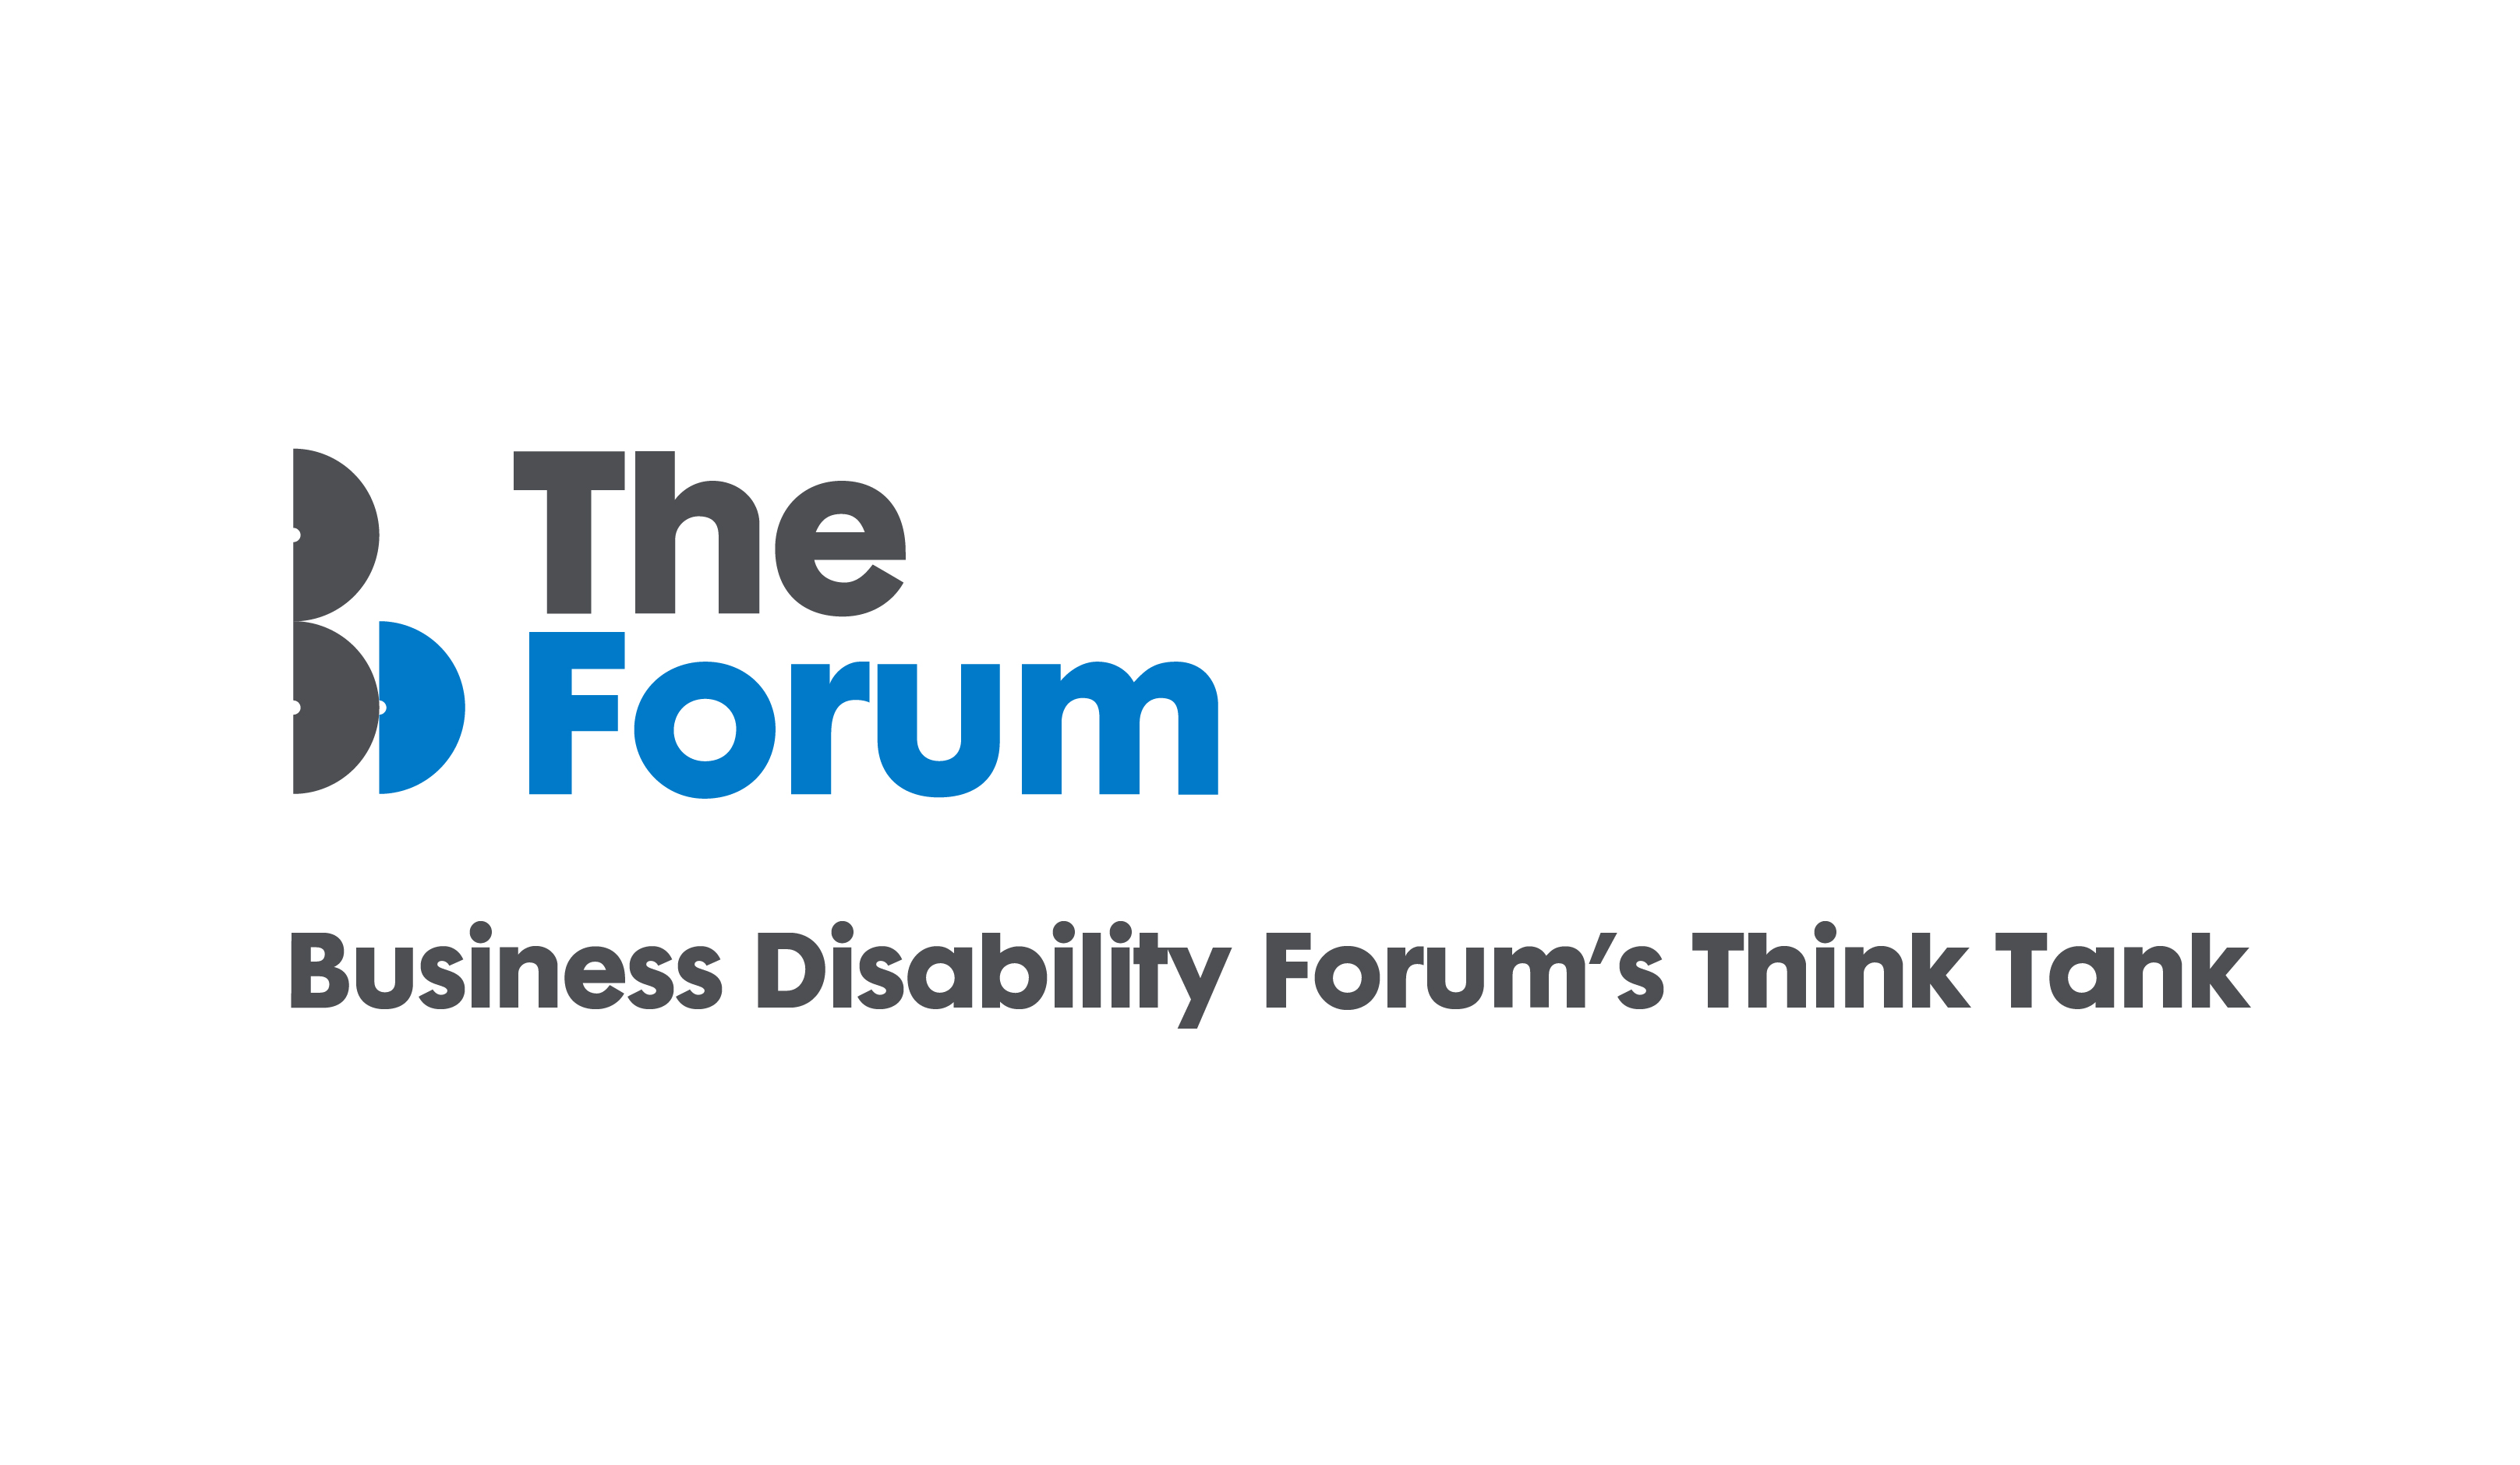 The Forum Business Disability forum's Think Tank logo